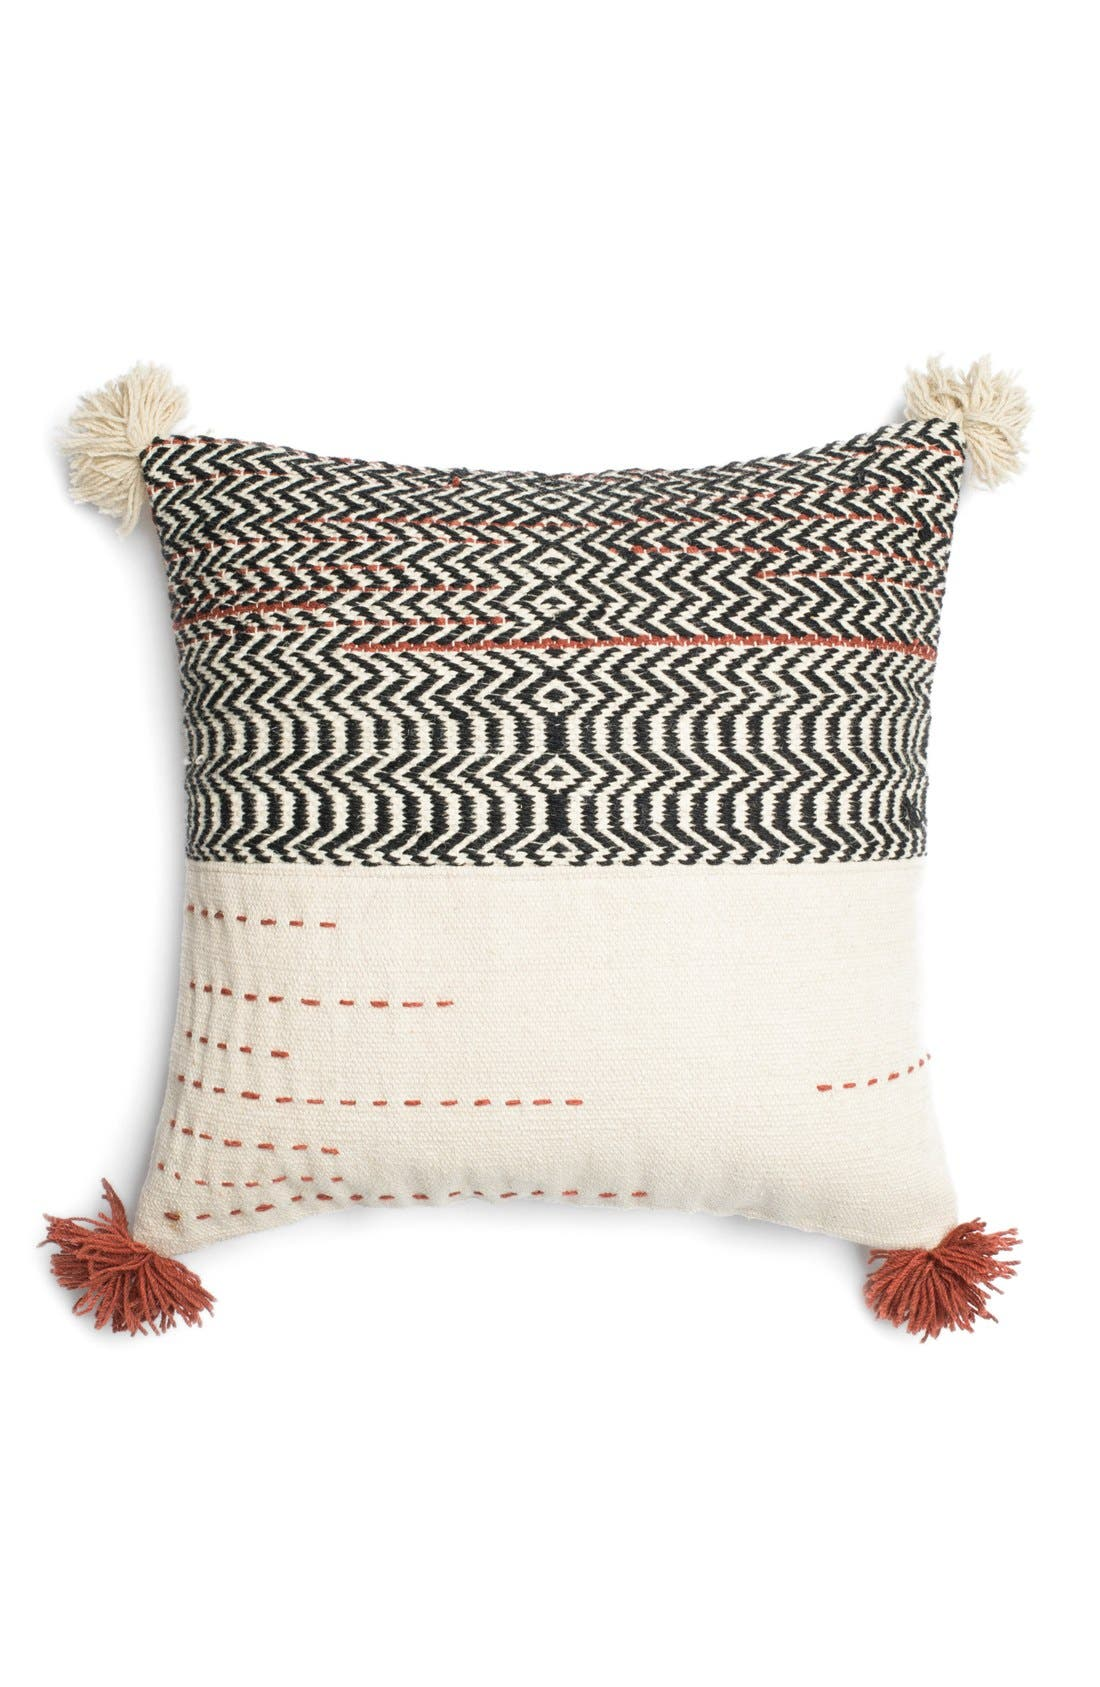 Main Image - Loloi Woven Wool & Cotton Accent Pillow